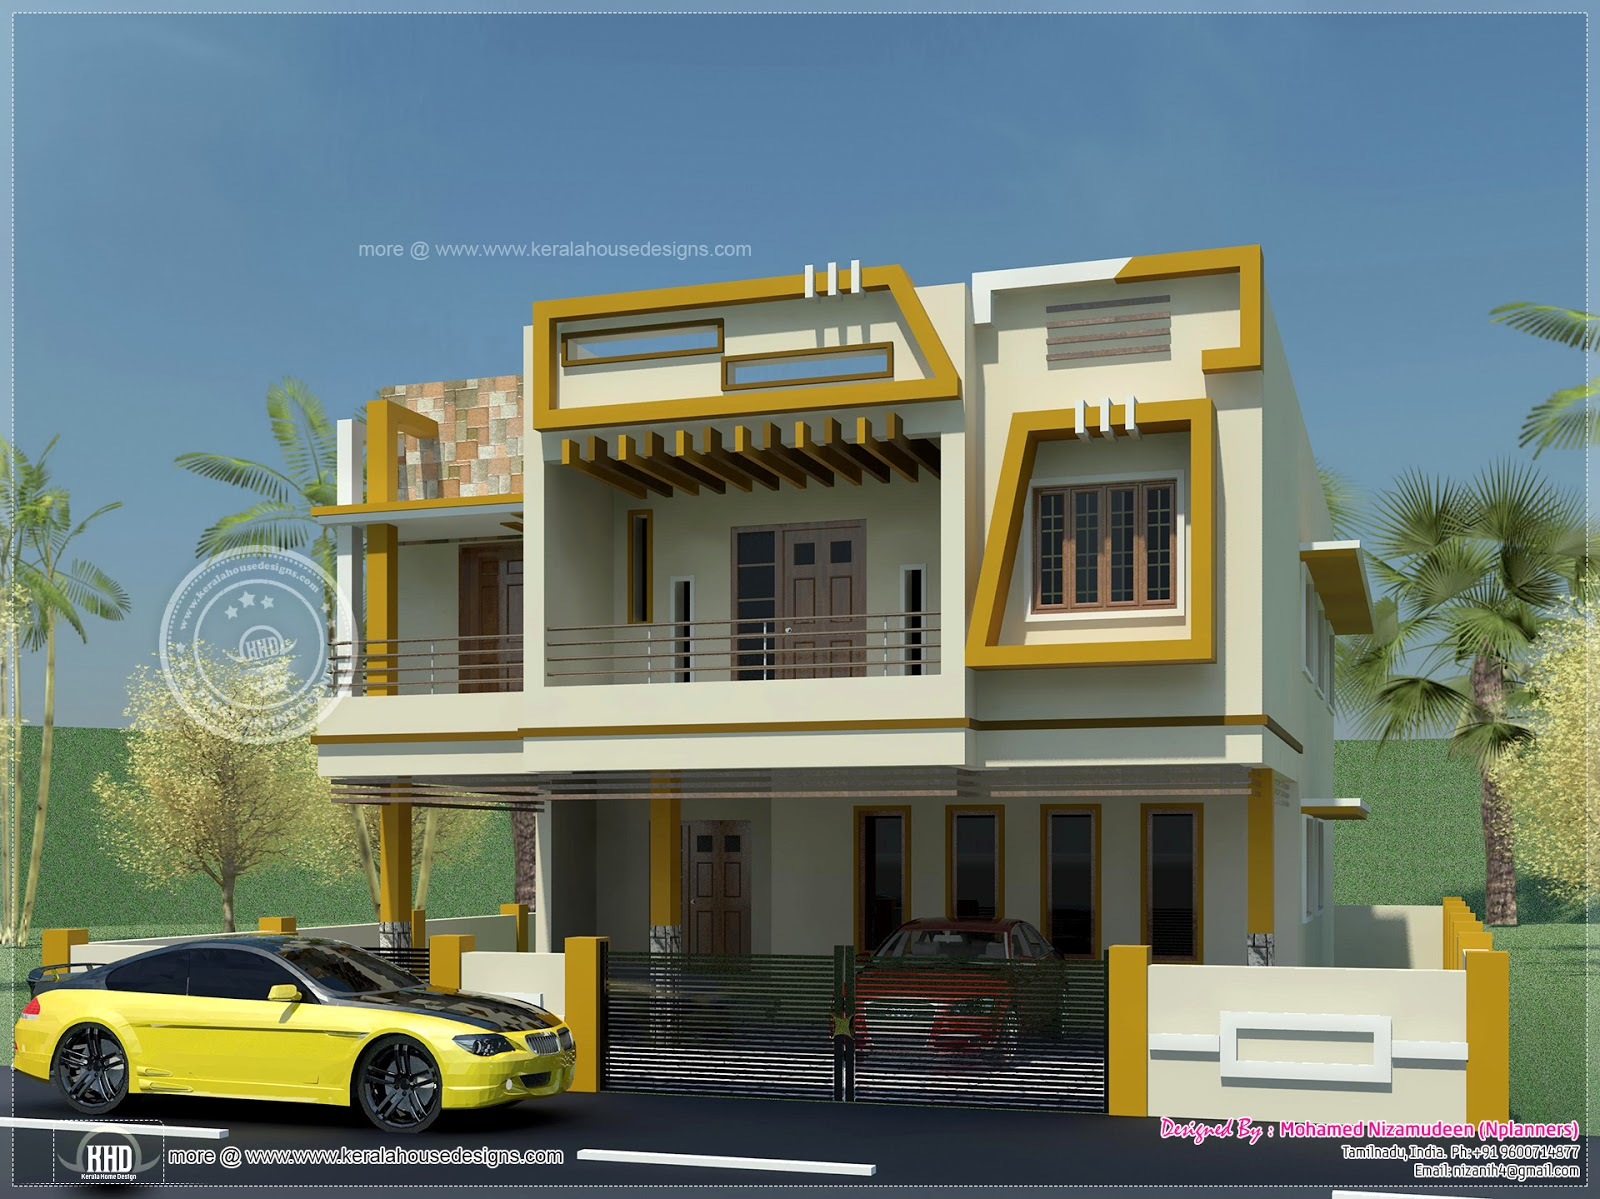 Kerala home design siddu buzz for Home designs in tamilnadu